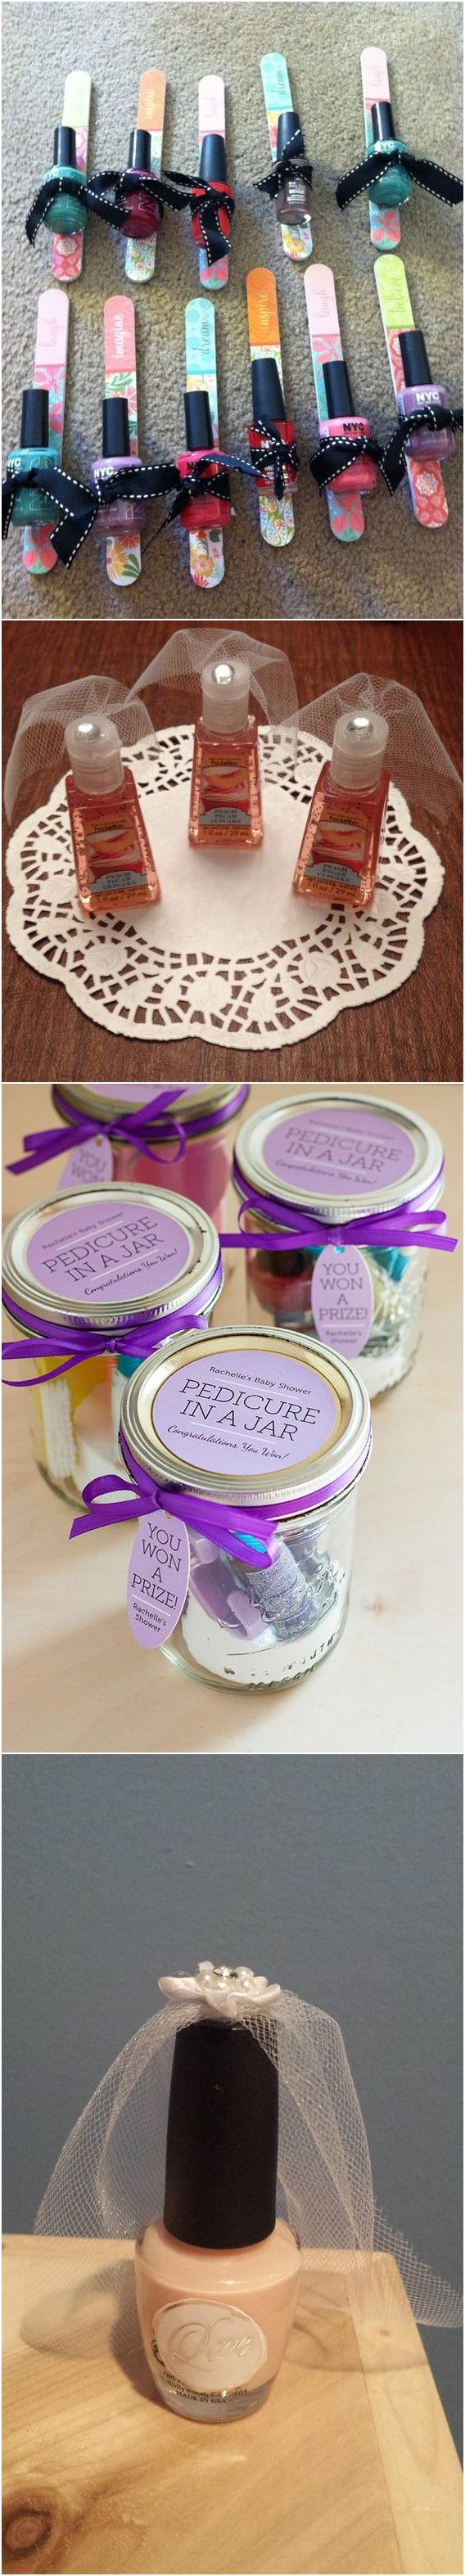 The 25+ best Inexpensive bridal shower gifts ideas on ...